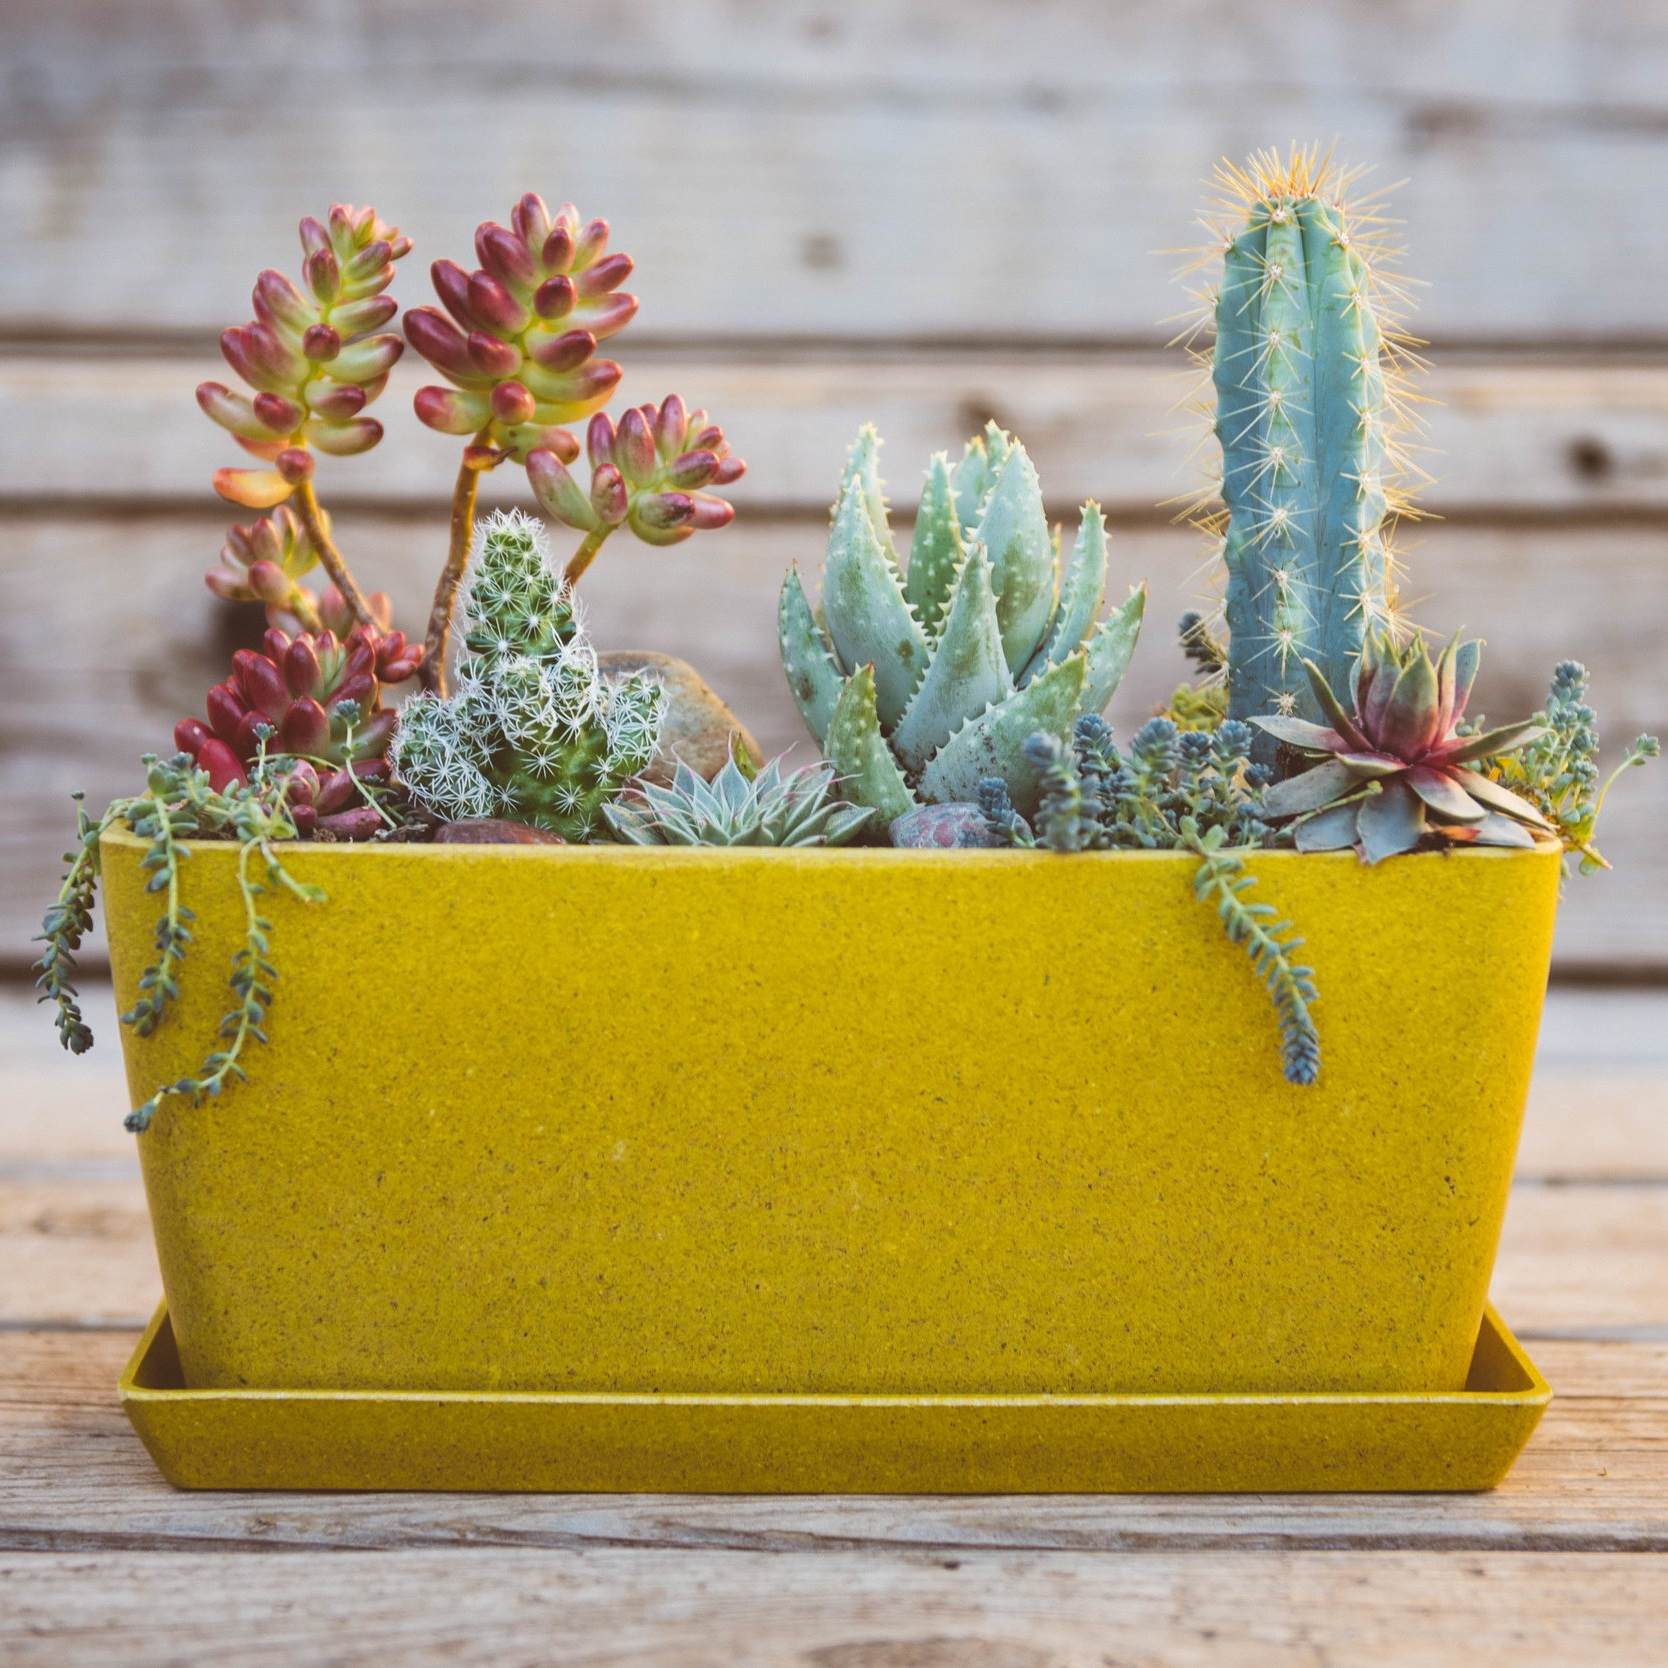 Plant based living gift arrangement. Custom plant order consisting of colorful succulents in harvest colored biodegradable eco pots by Ecofroms. Biodegradable pot, harvest color pot, mustard color pot, succulent garden, succulent arrangement, cactus garden  Plant Design By: The Potted Poppy, San Diego